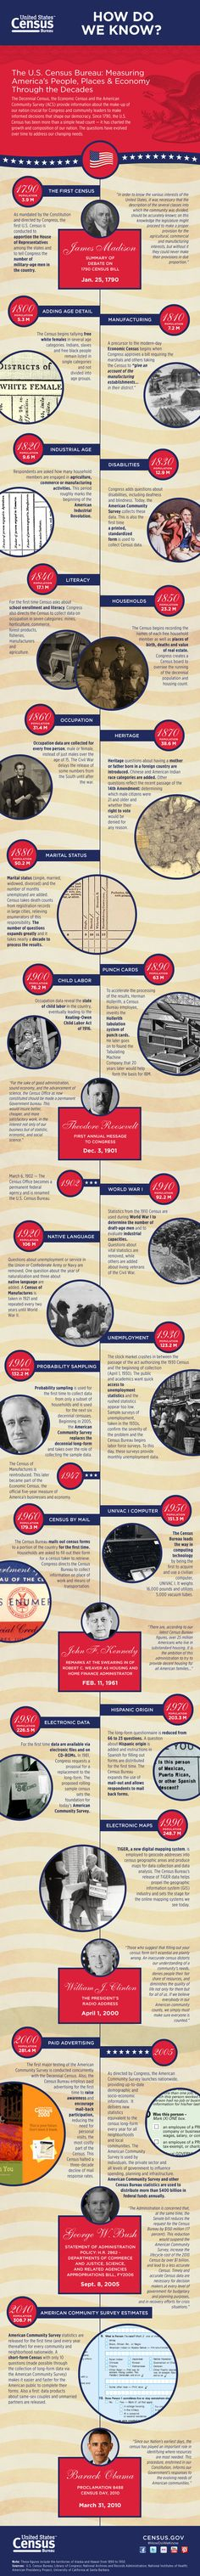 """How Do We Know?"" historical census #infographic details how our #FoundingFathers enshrined #statistics in the #constitution. #HowDoWeKnow #July4th #4thofJuly"